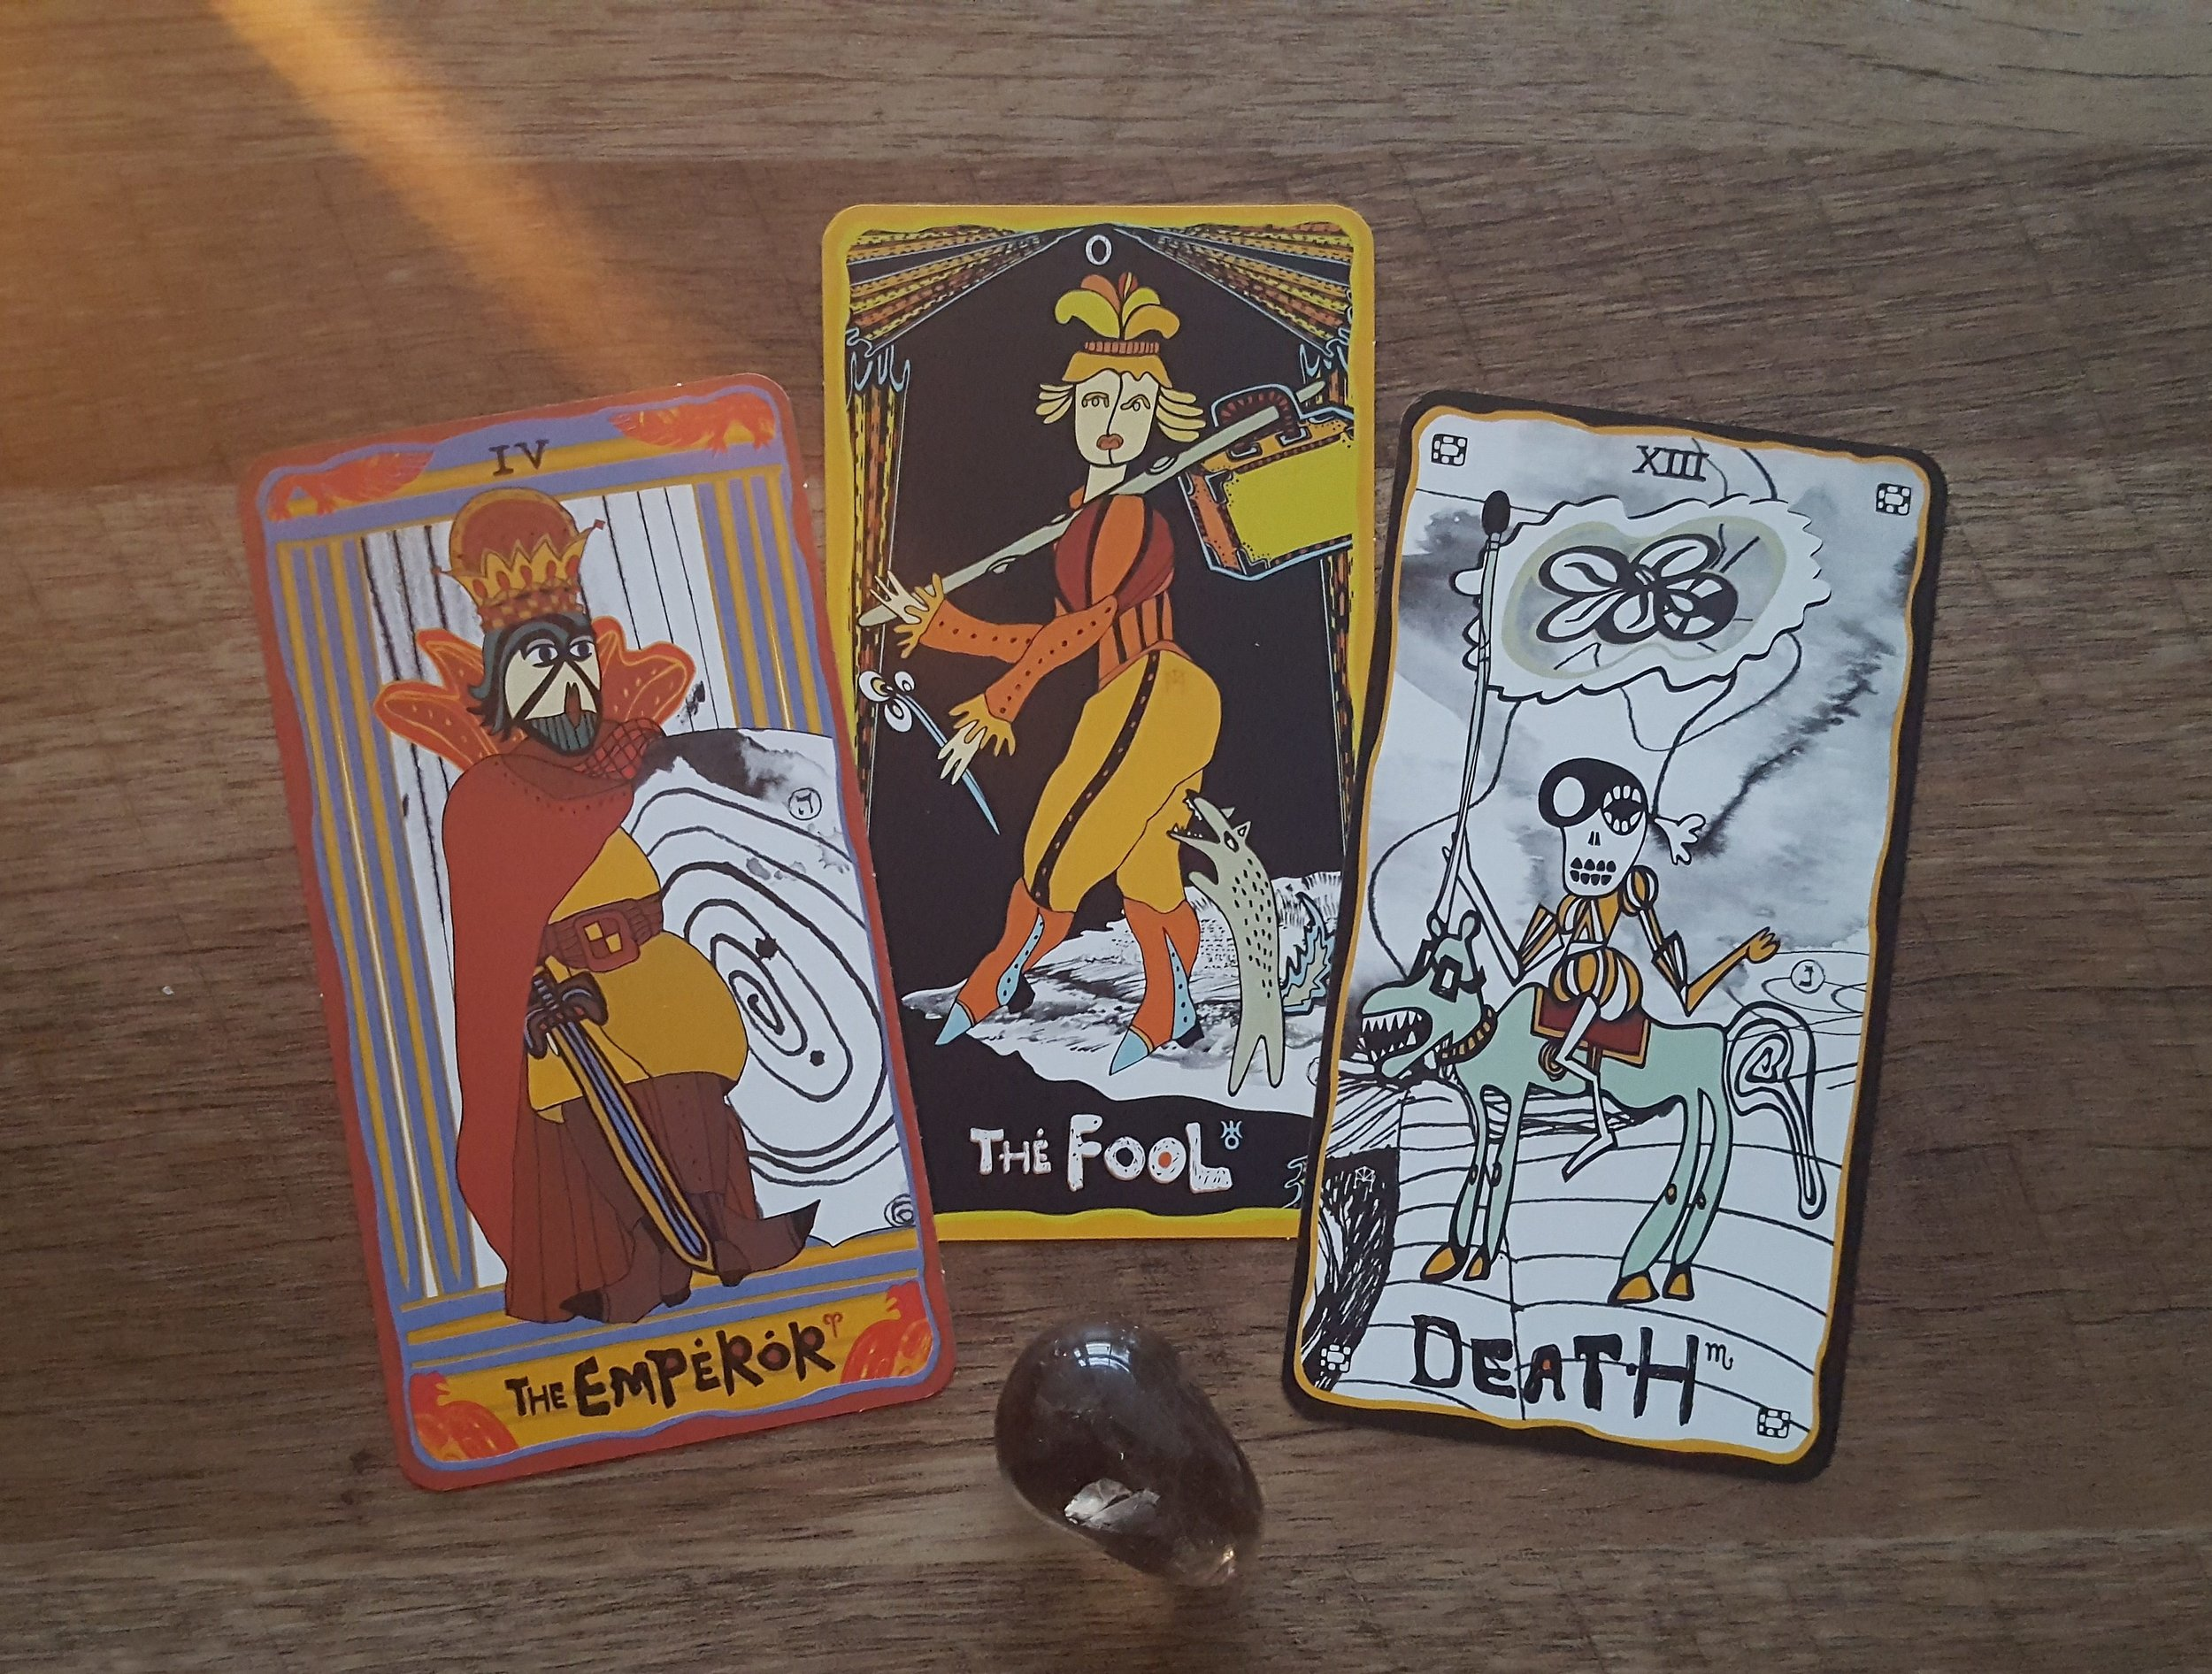 Majors from the Sakki Sakki Tarot; interesting to note, The Emperor & Death are related by their numbers 4 & 13 (1+3=4)